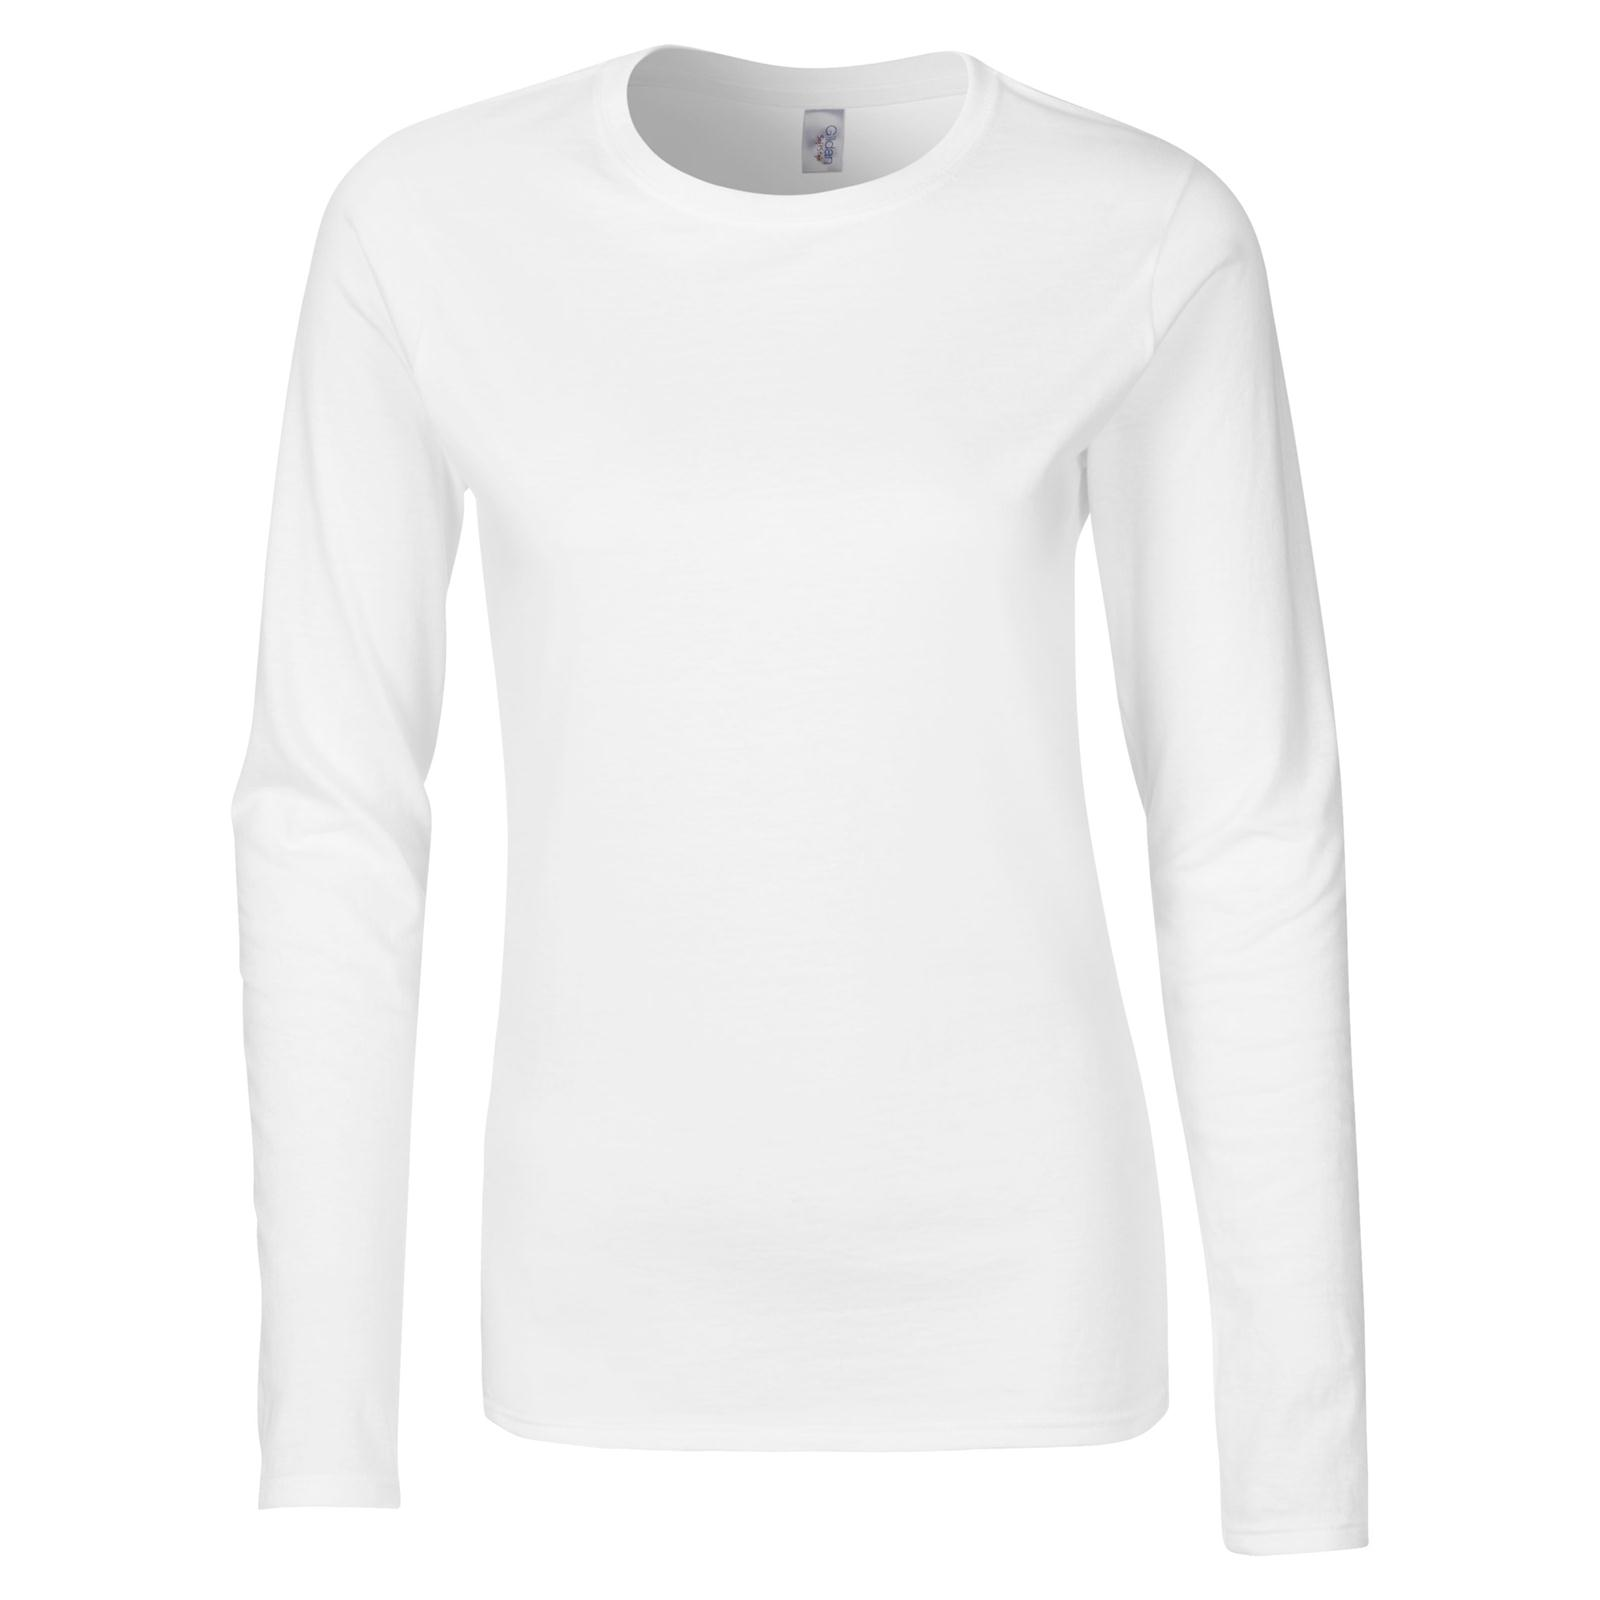 New GILDAN Womens Ladies Soft Style Cotton Long Sleeve T Shirt in ...